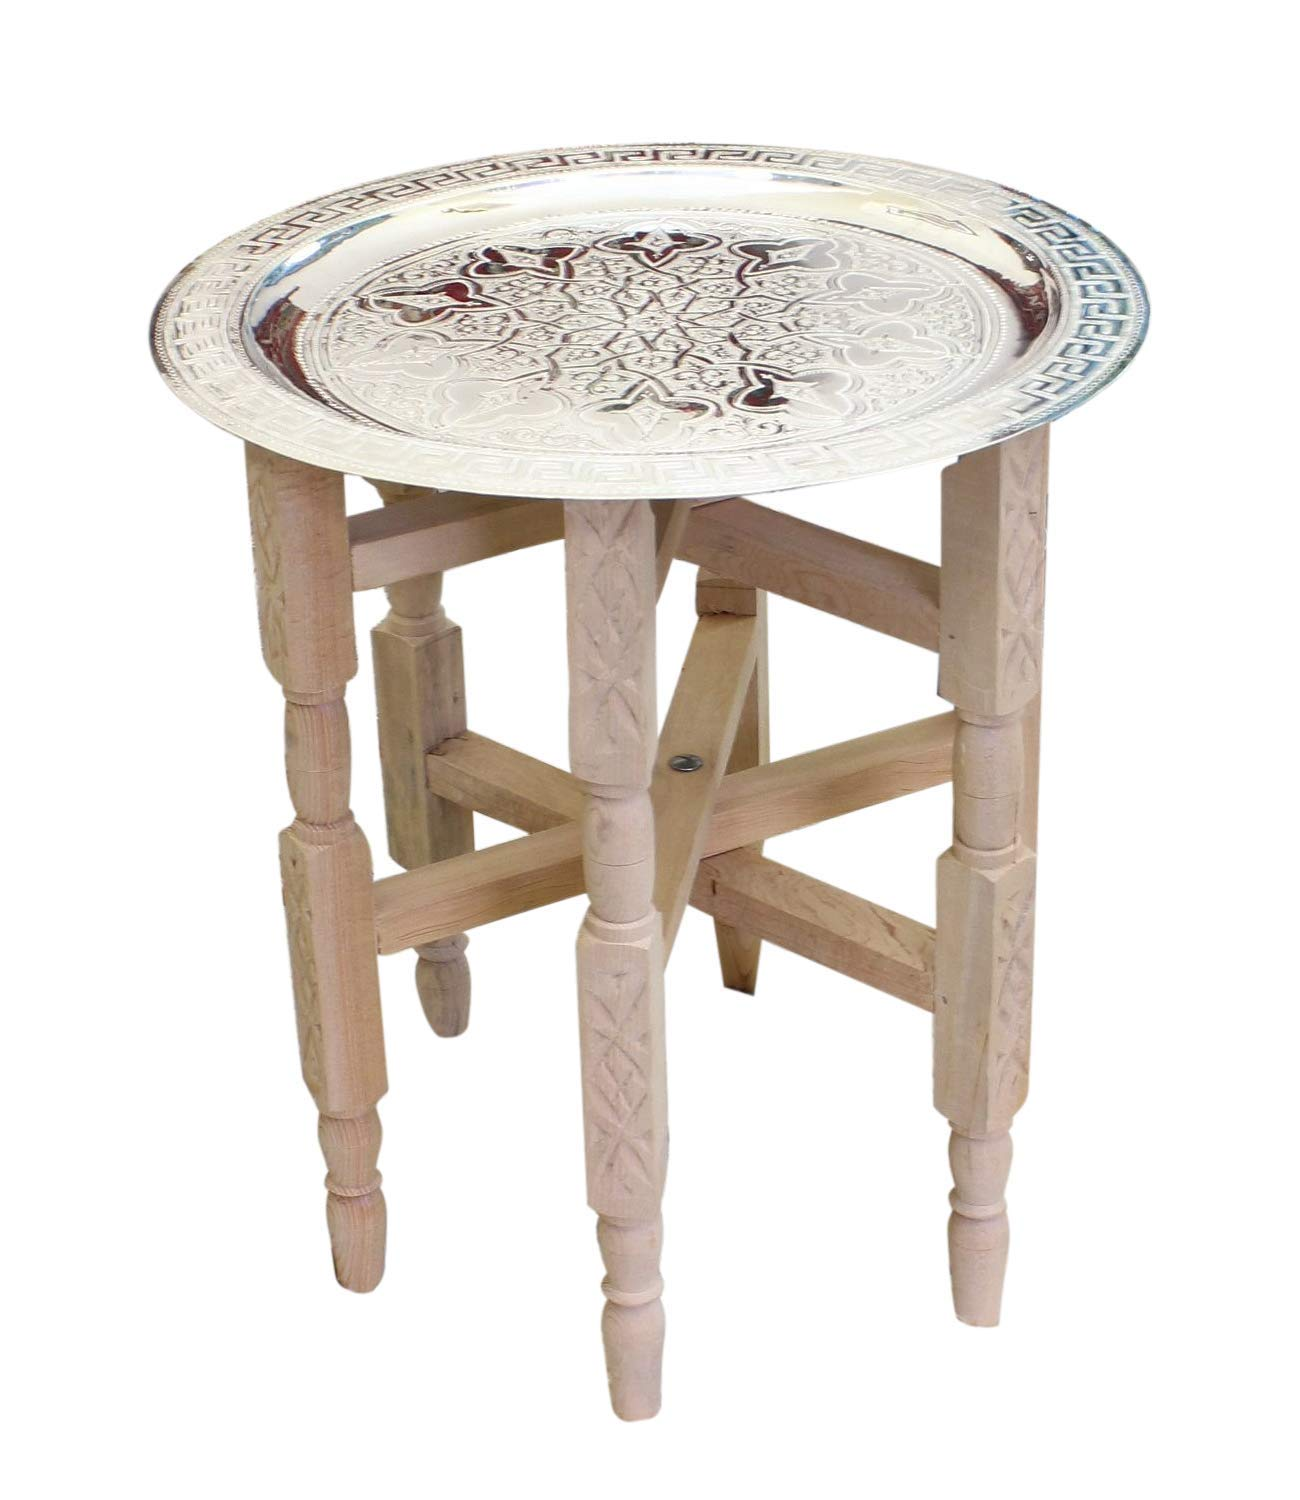 ESSENCE OF MOROCCO Moroccan Tray Side Table Small in Silver Maillechort with Cedar Wood Legs Handmade Hand Engraved 40 cm diameter (Ref TST1) Essence of Morocco Ltd.